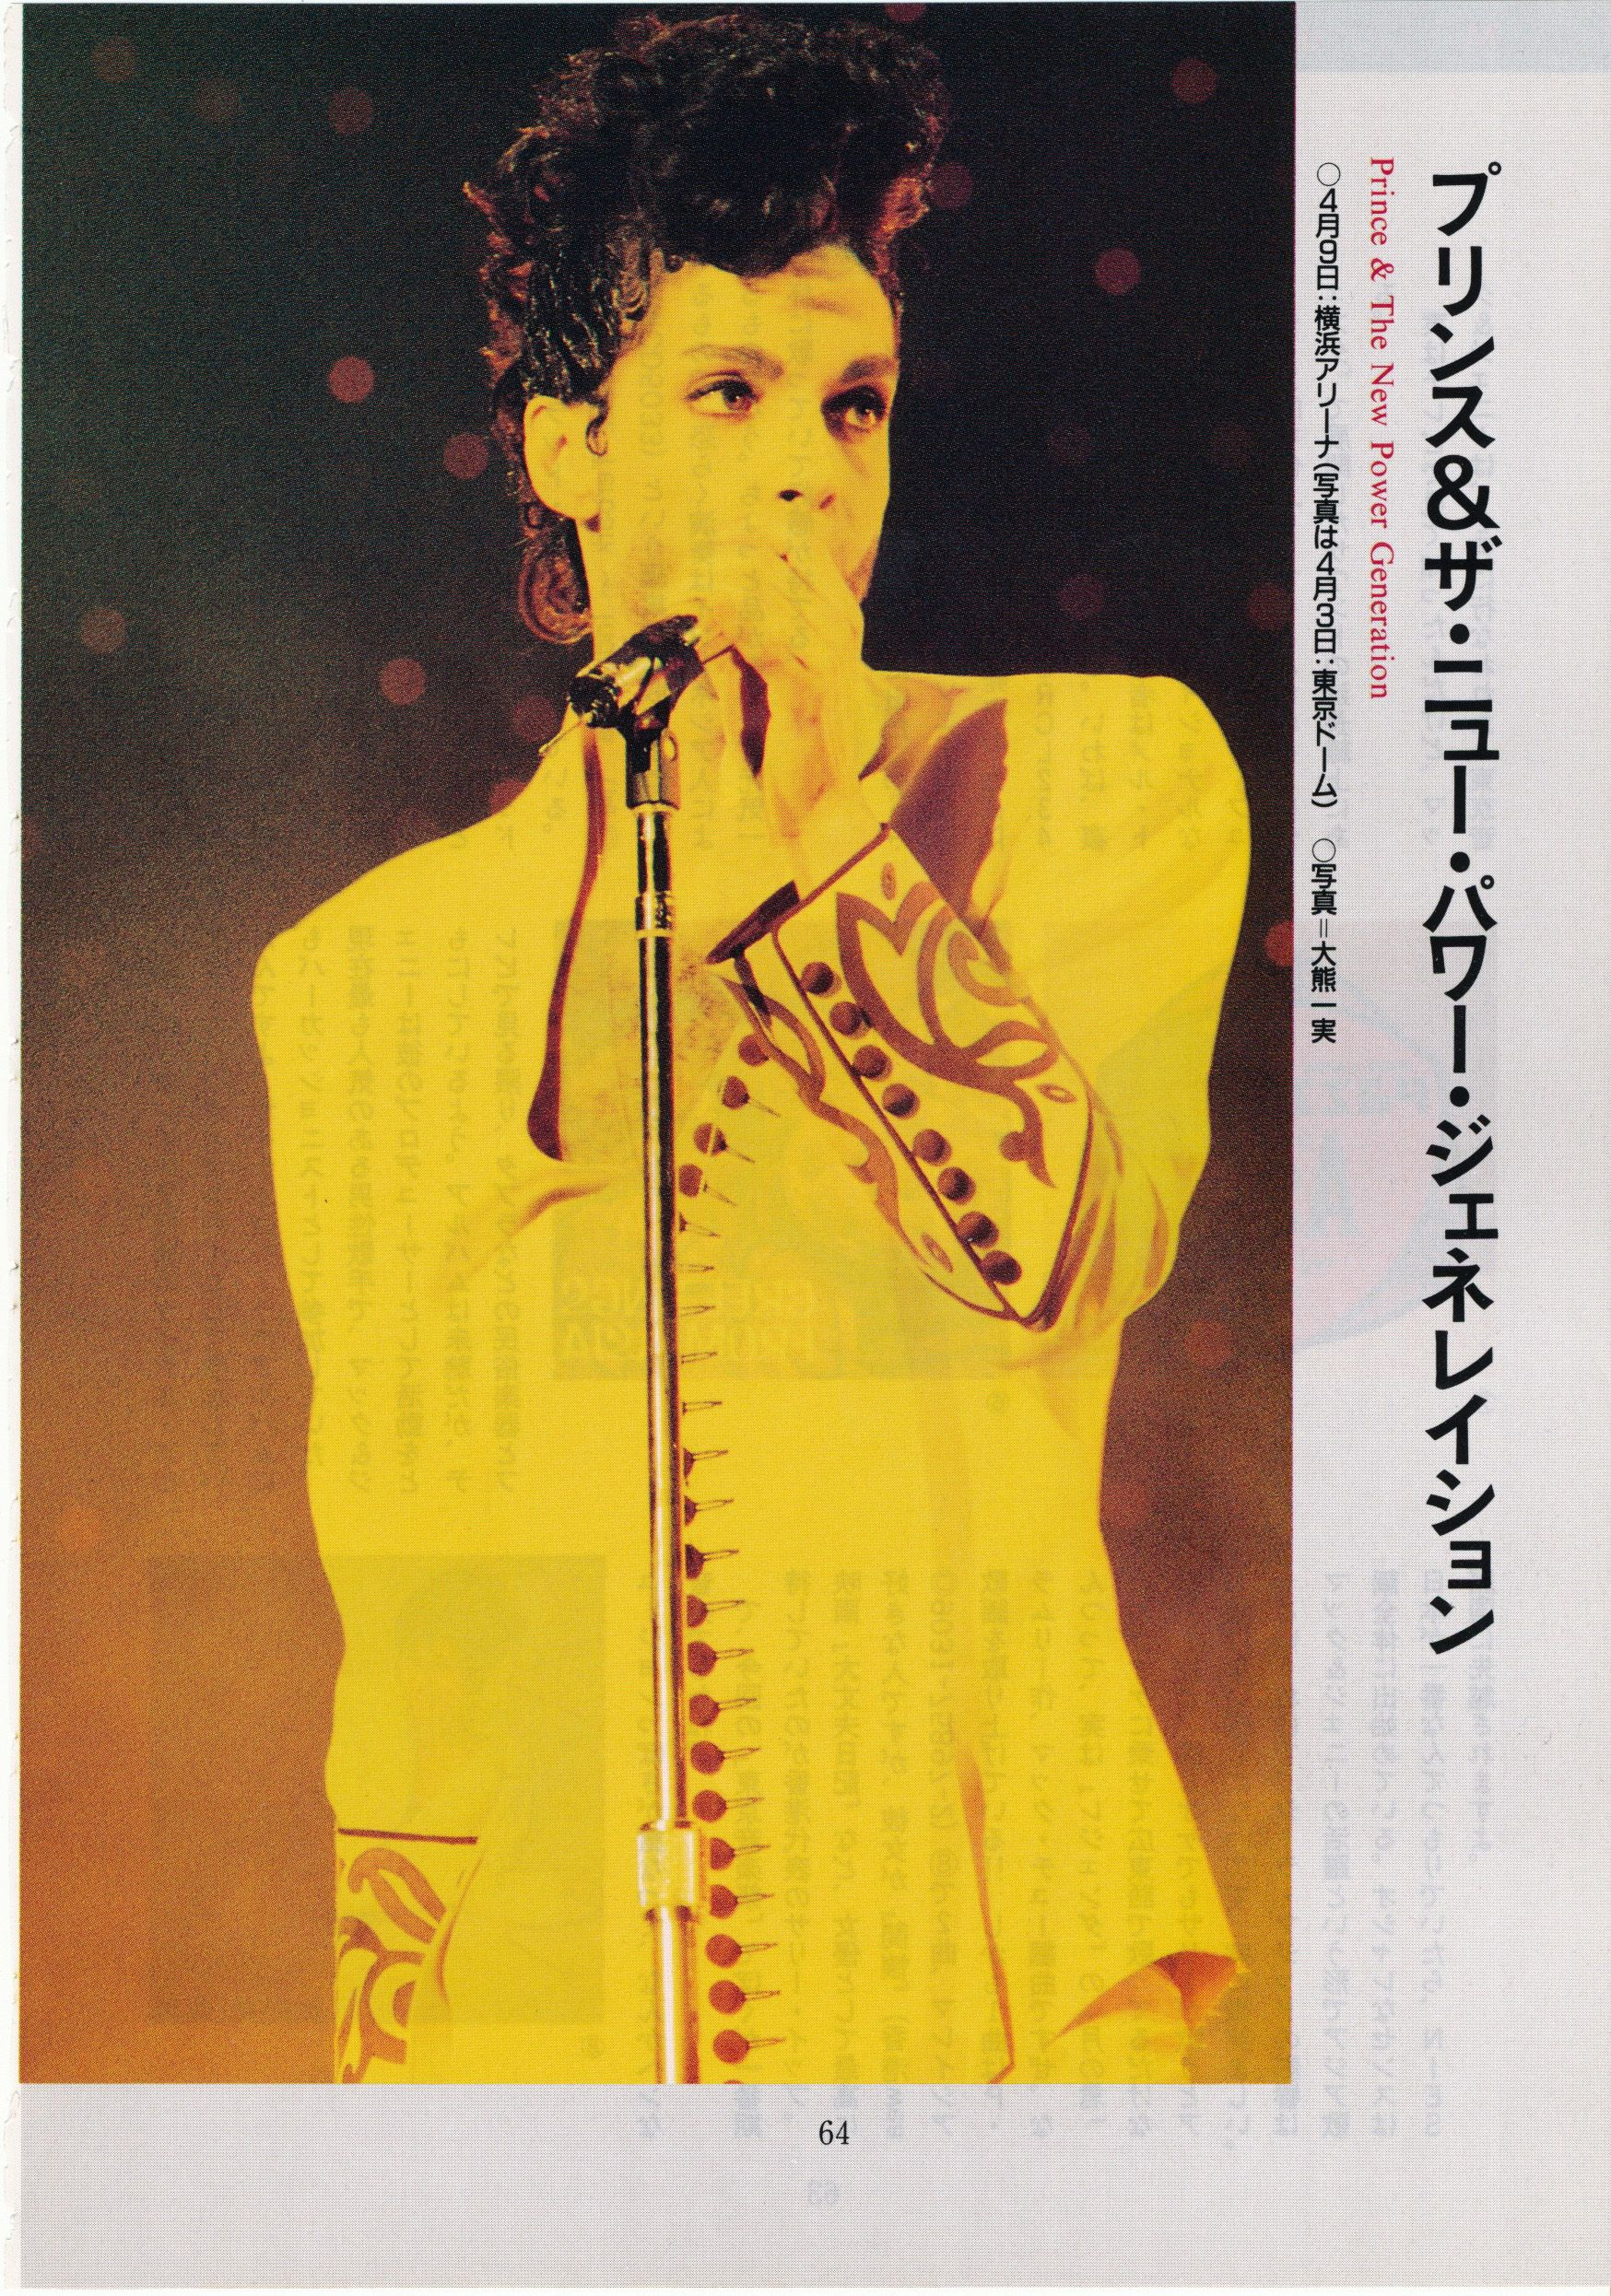 Classic Prince | 1991 Diamonds & Pearls Tour - Japanese Magazine Article -  HiRes 300 dpi Scan by Modernaire 2015